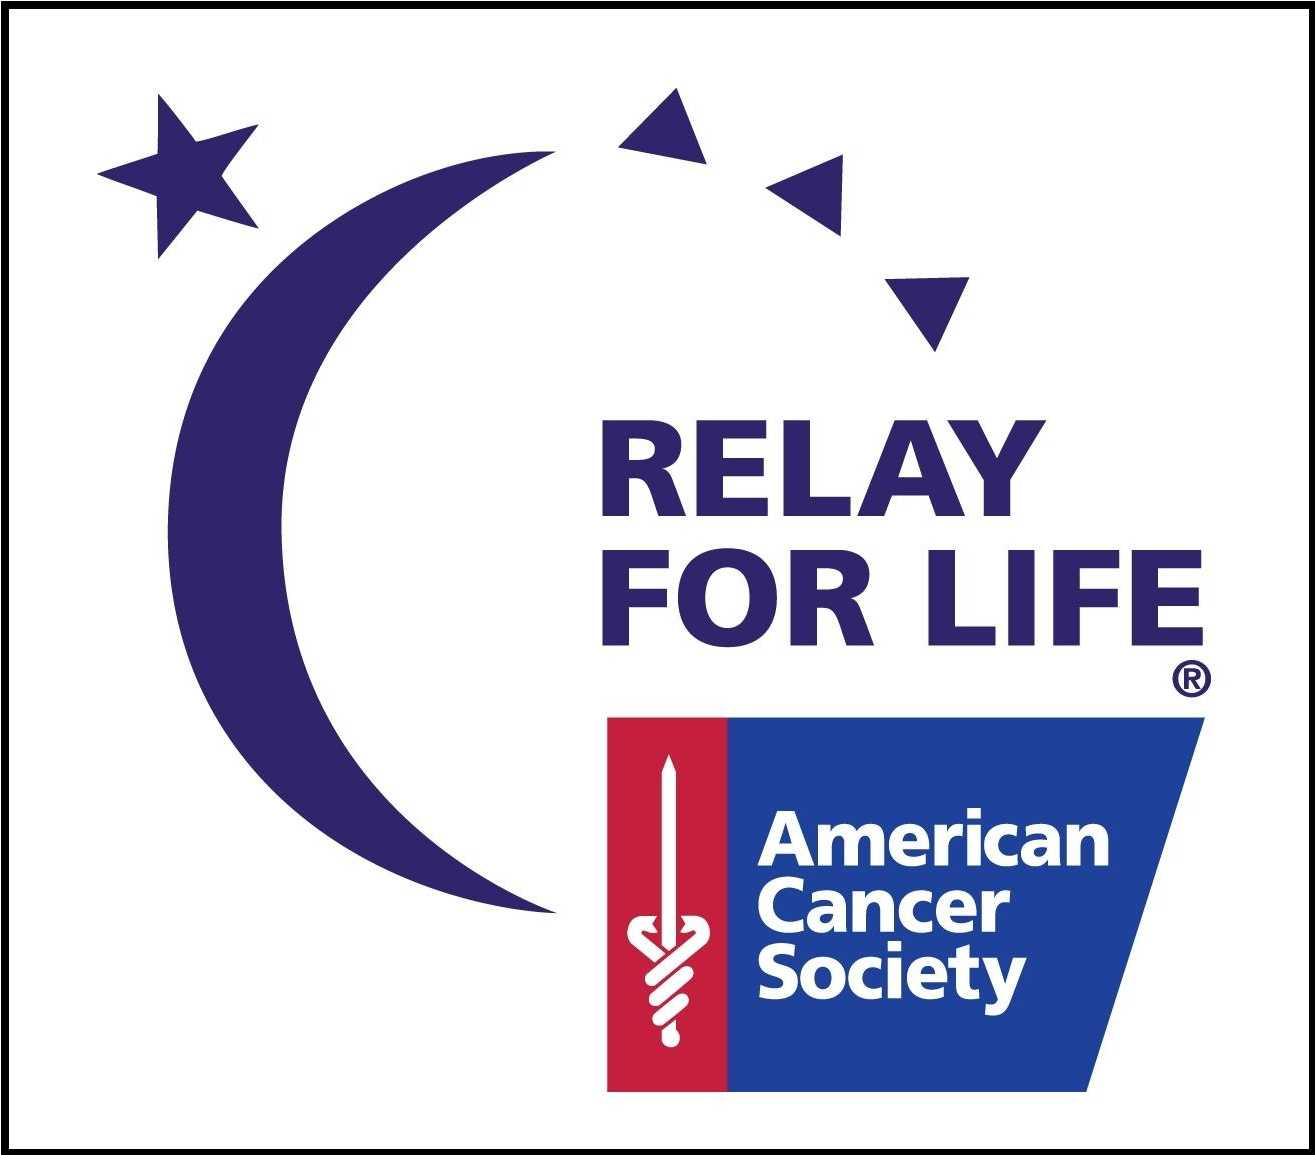 St. Augustine Beach Pier, St. Johns County pier, St. Augustine Beach, Pier events, st. augustine beach pier events, St. Johns county pier park, Relay for life, Beach out Cancer, Avid Design Group